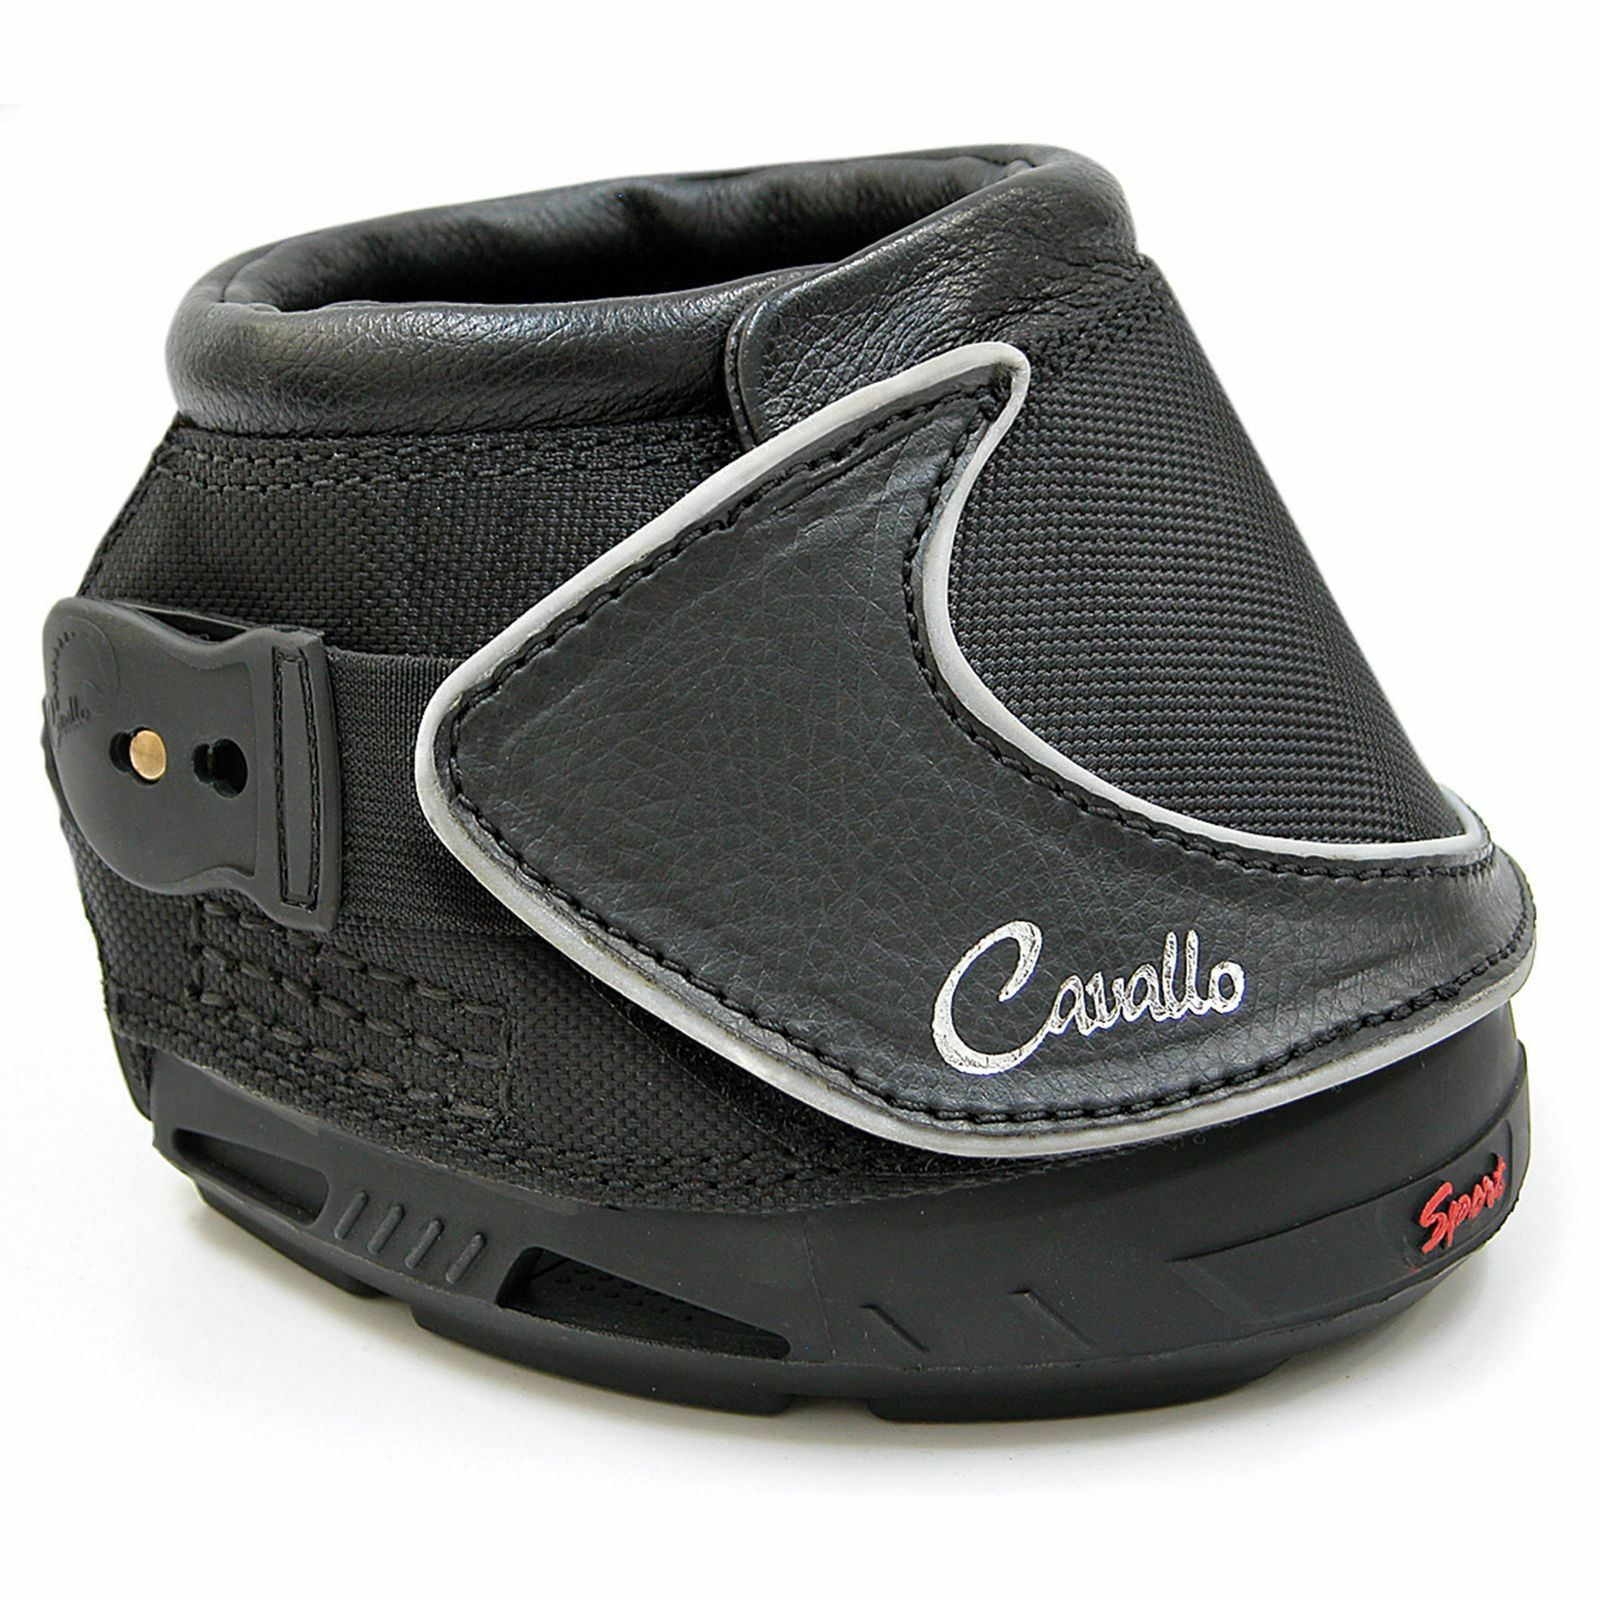 Cavallo Sport Hoof Boots Lightweight for Arena or Trails Sold in Pairs - Slim